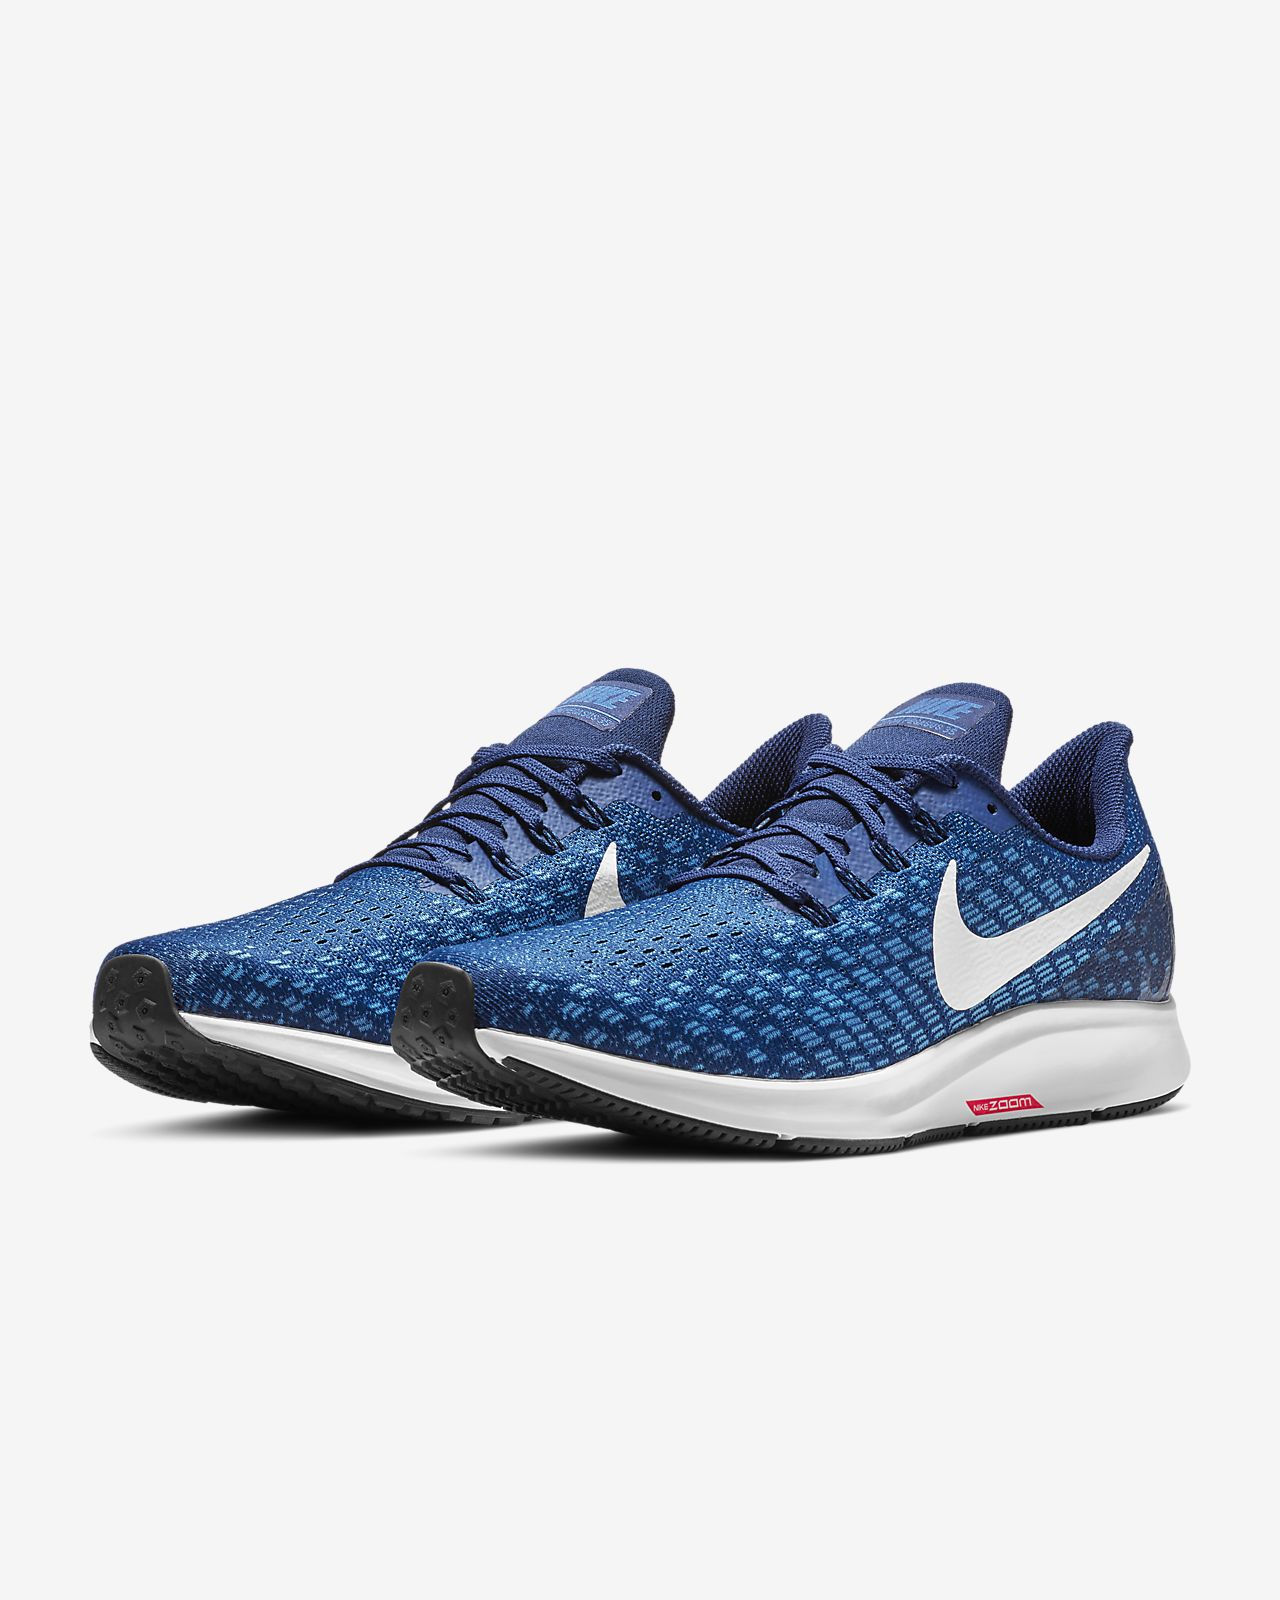 reputable site 488e1 ed21a ... Nike Air Zoom Pegasus 35 Men s Running Shoe